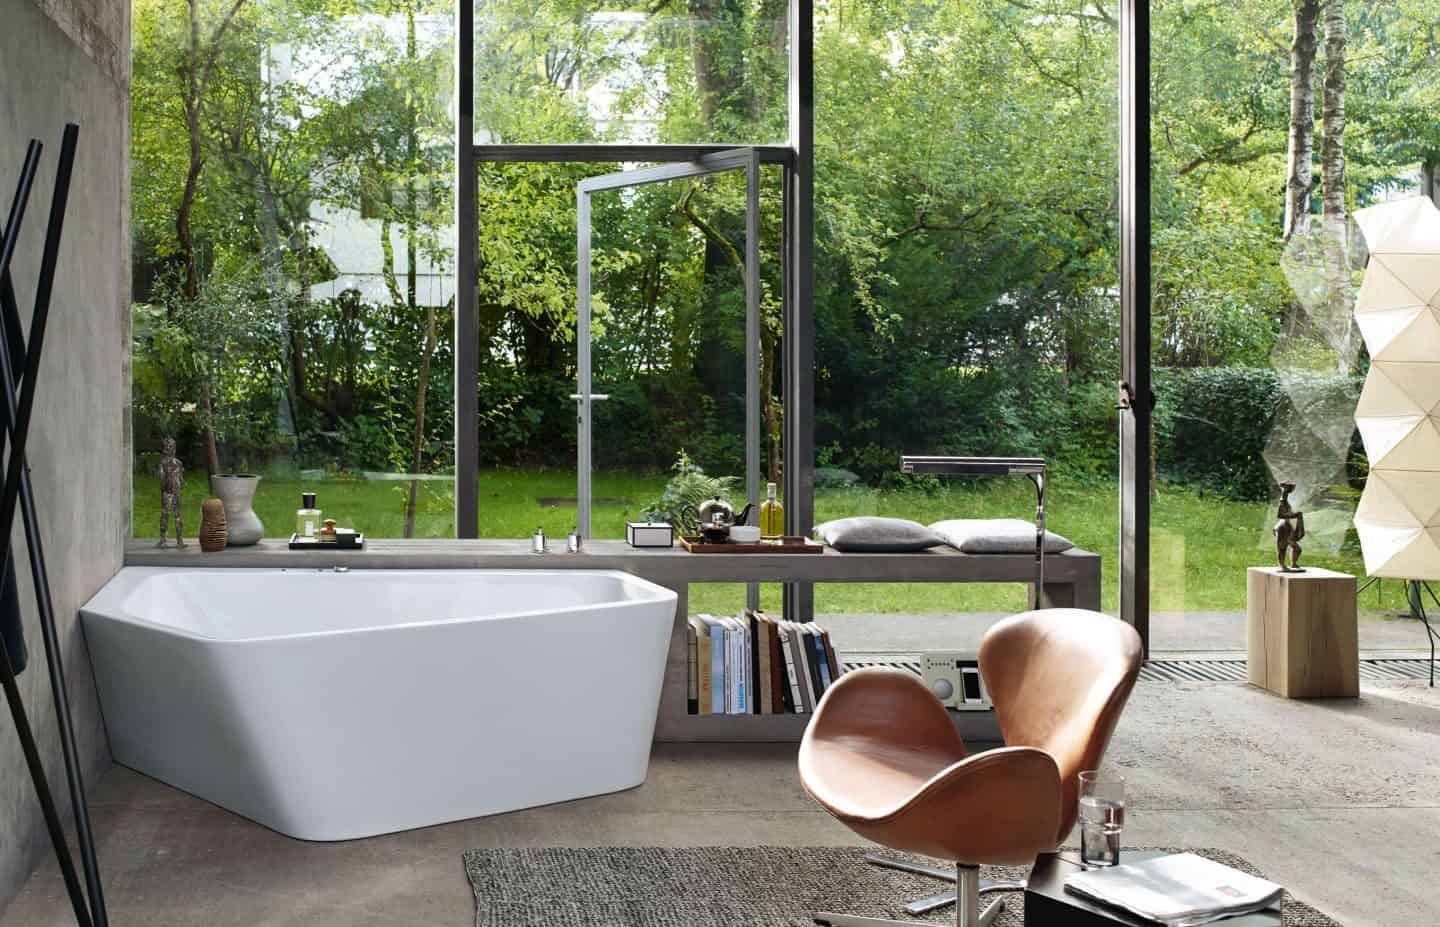 Luxury bathroom brand Duravit showcases the Paiova 5 bathtub in front of a large wall of glass